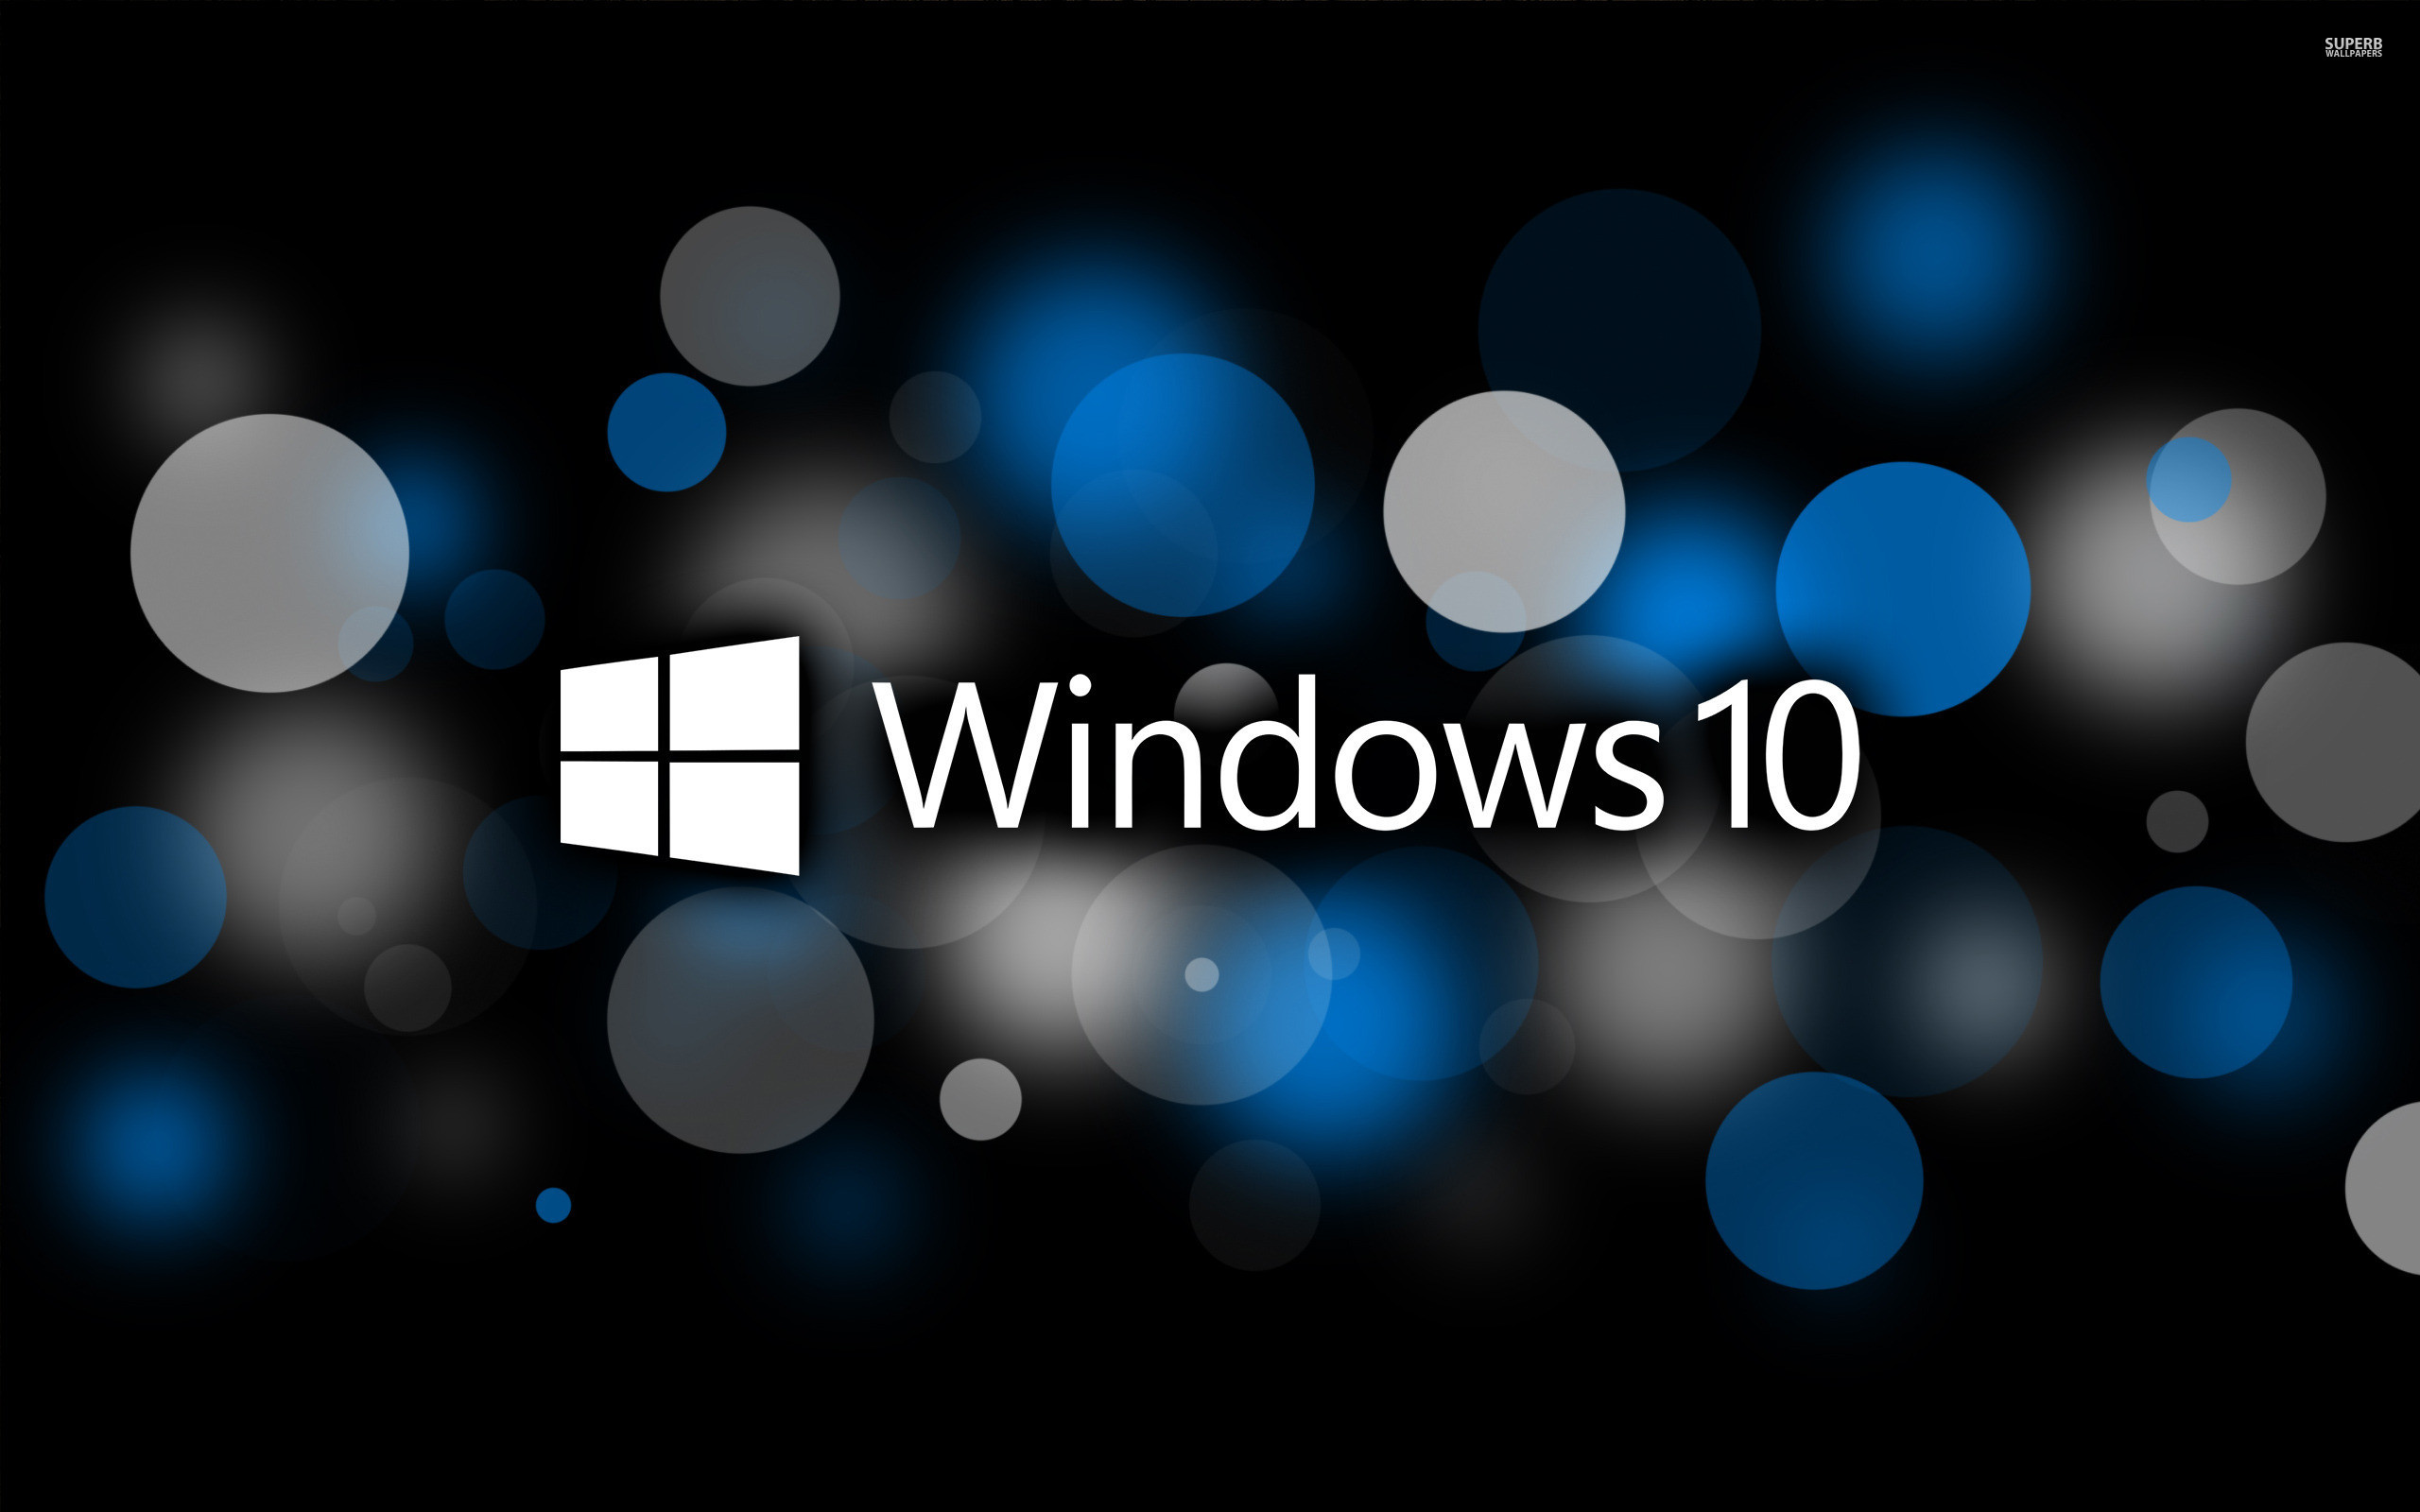 Windows 10 Wallpaper Hd 1080p Download Hd Wallpapers For